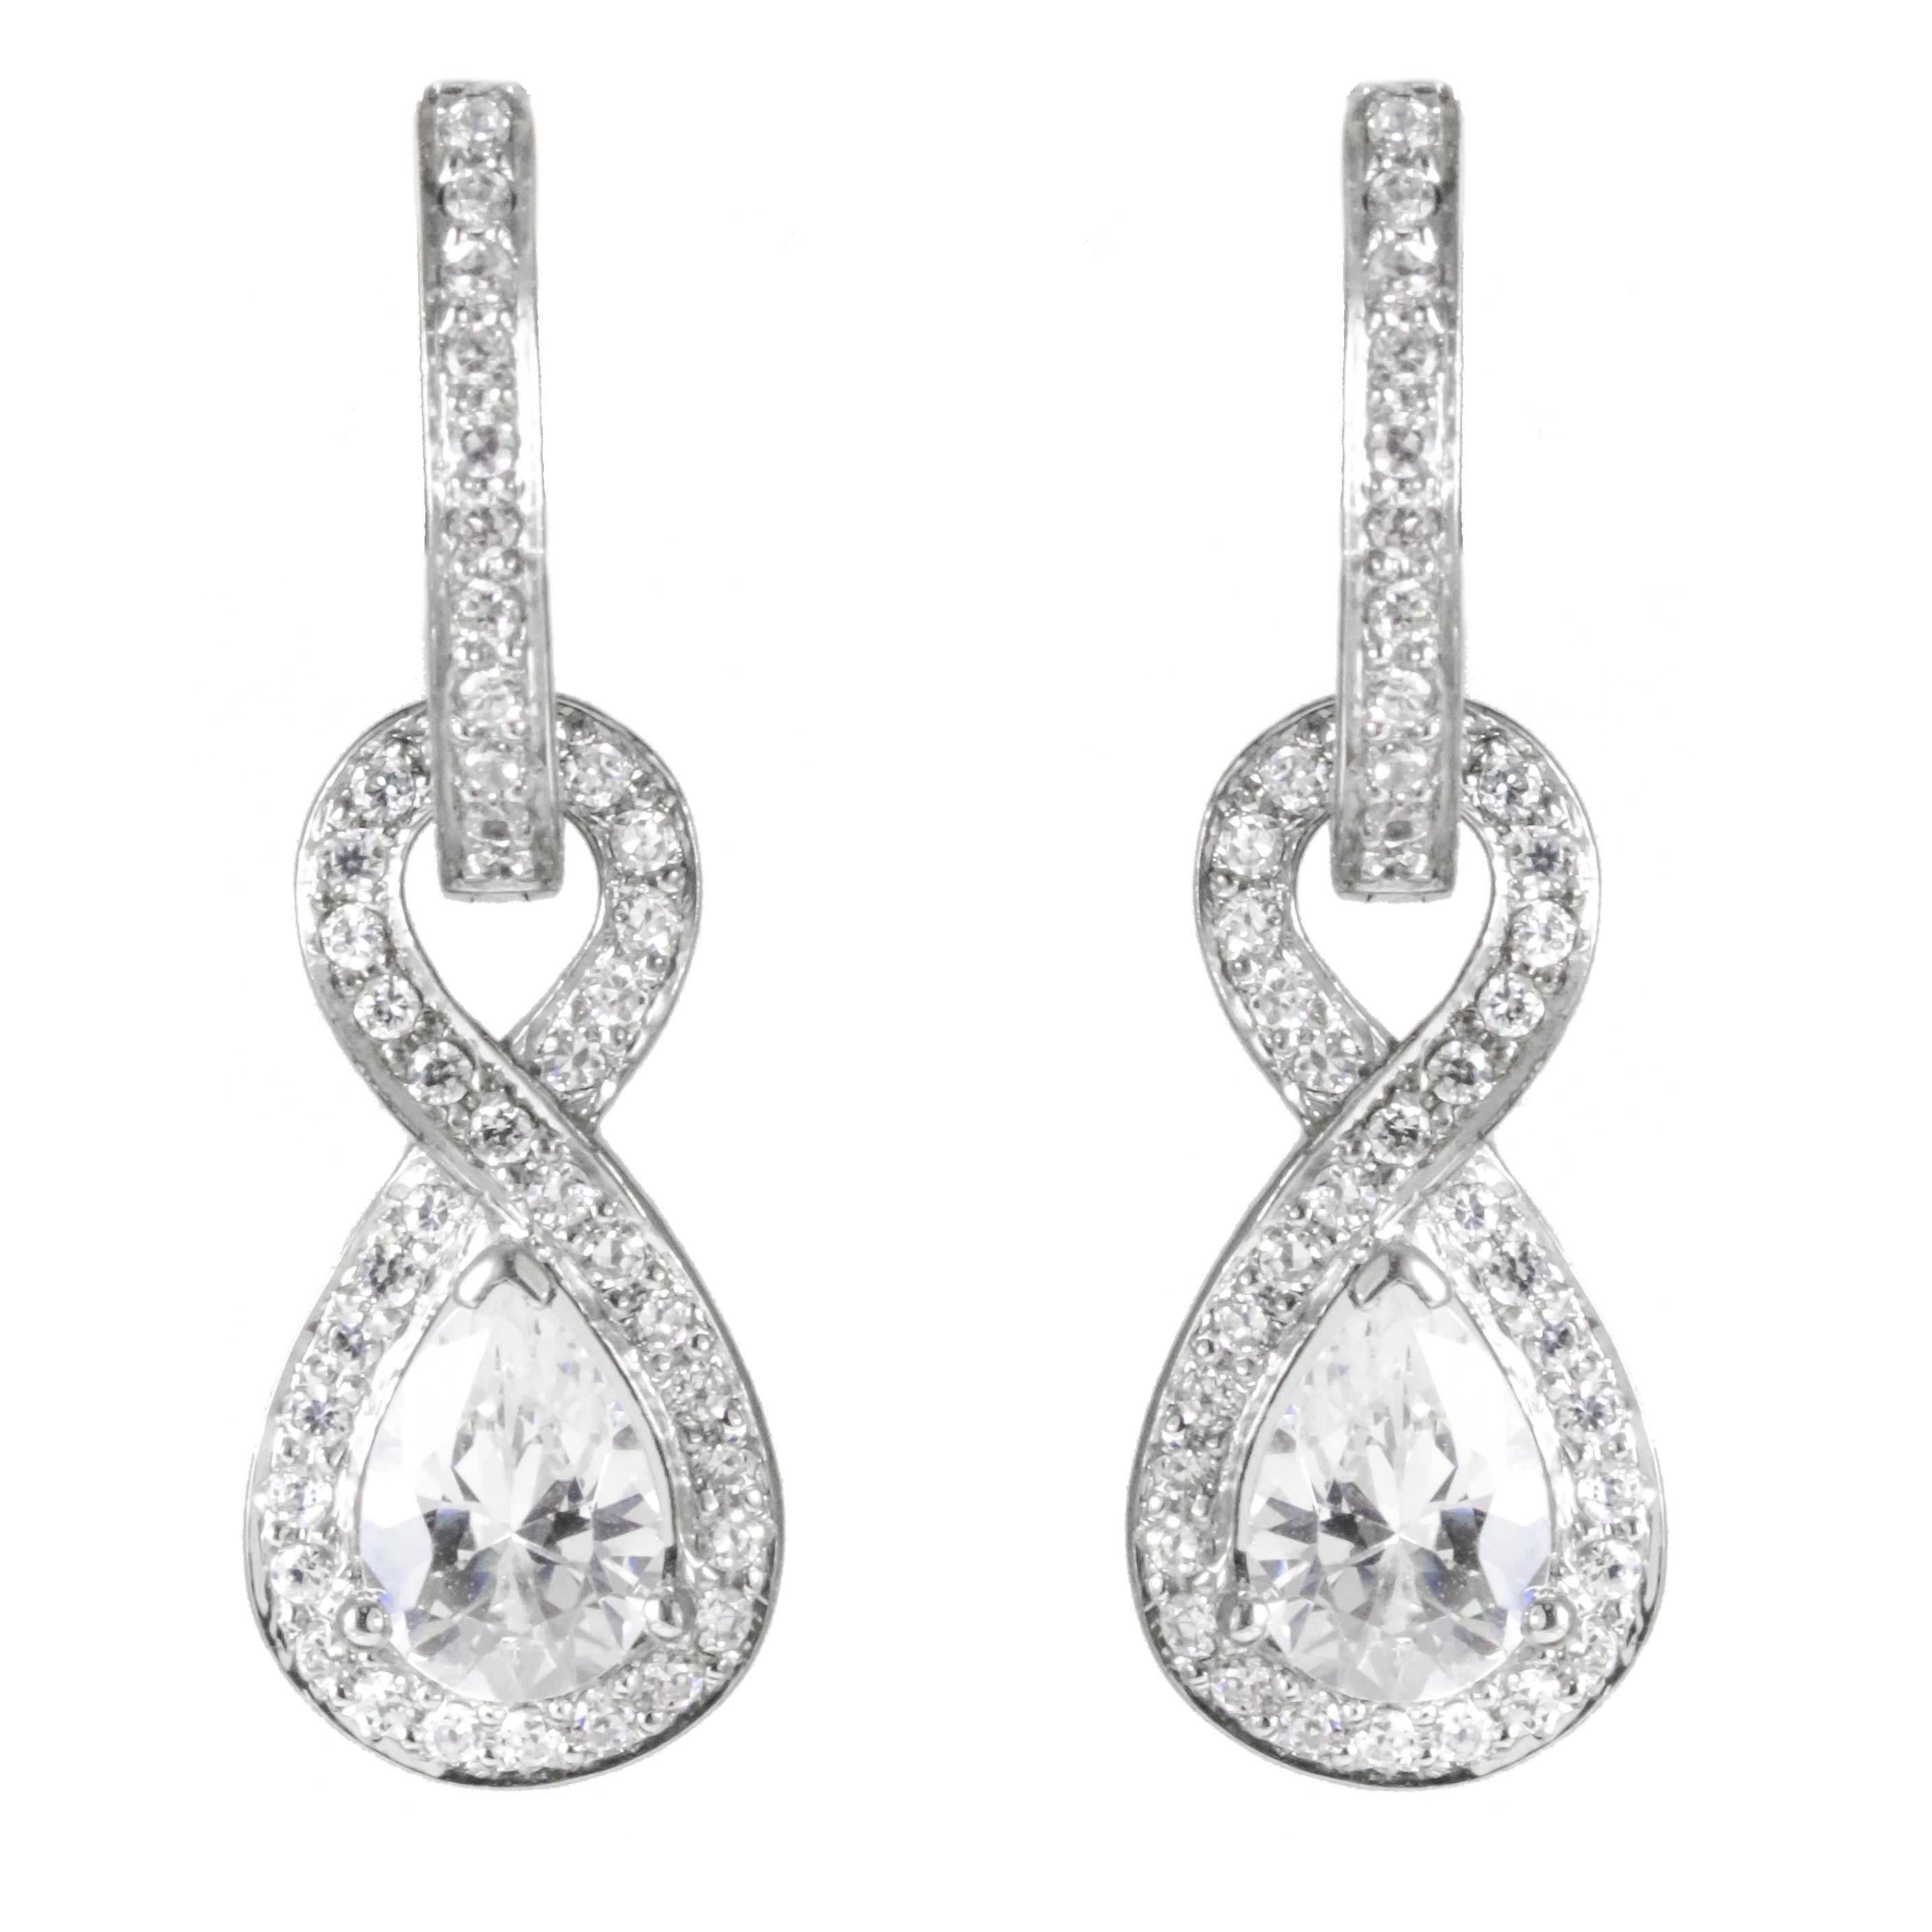 14k white gold pear shape diamond earrings